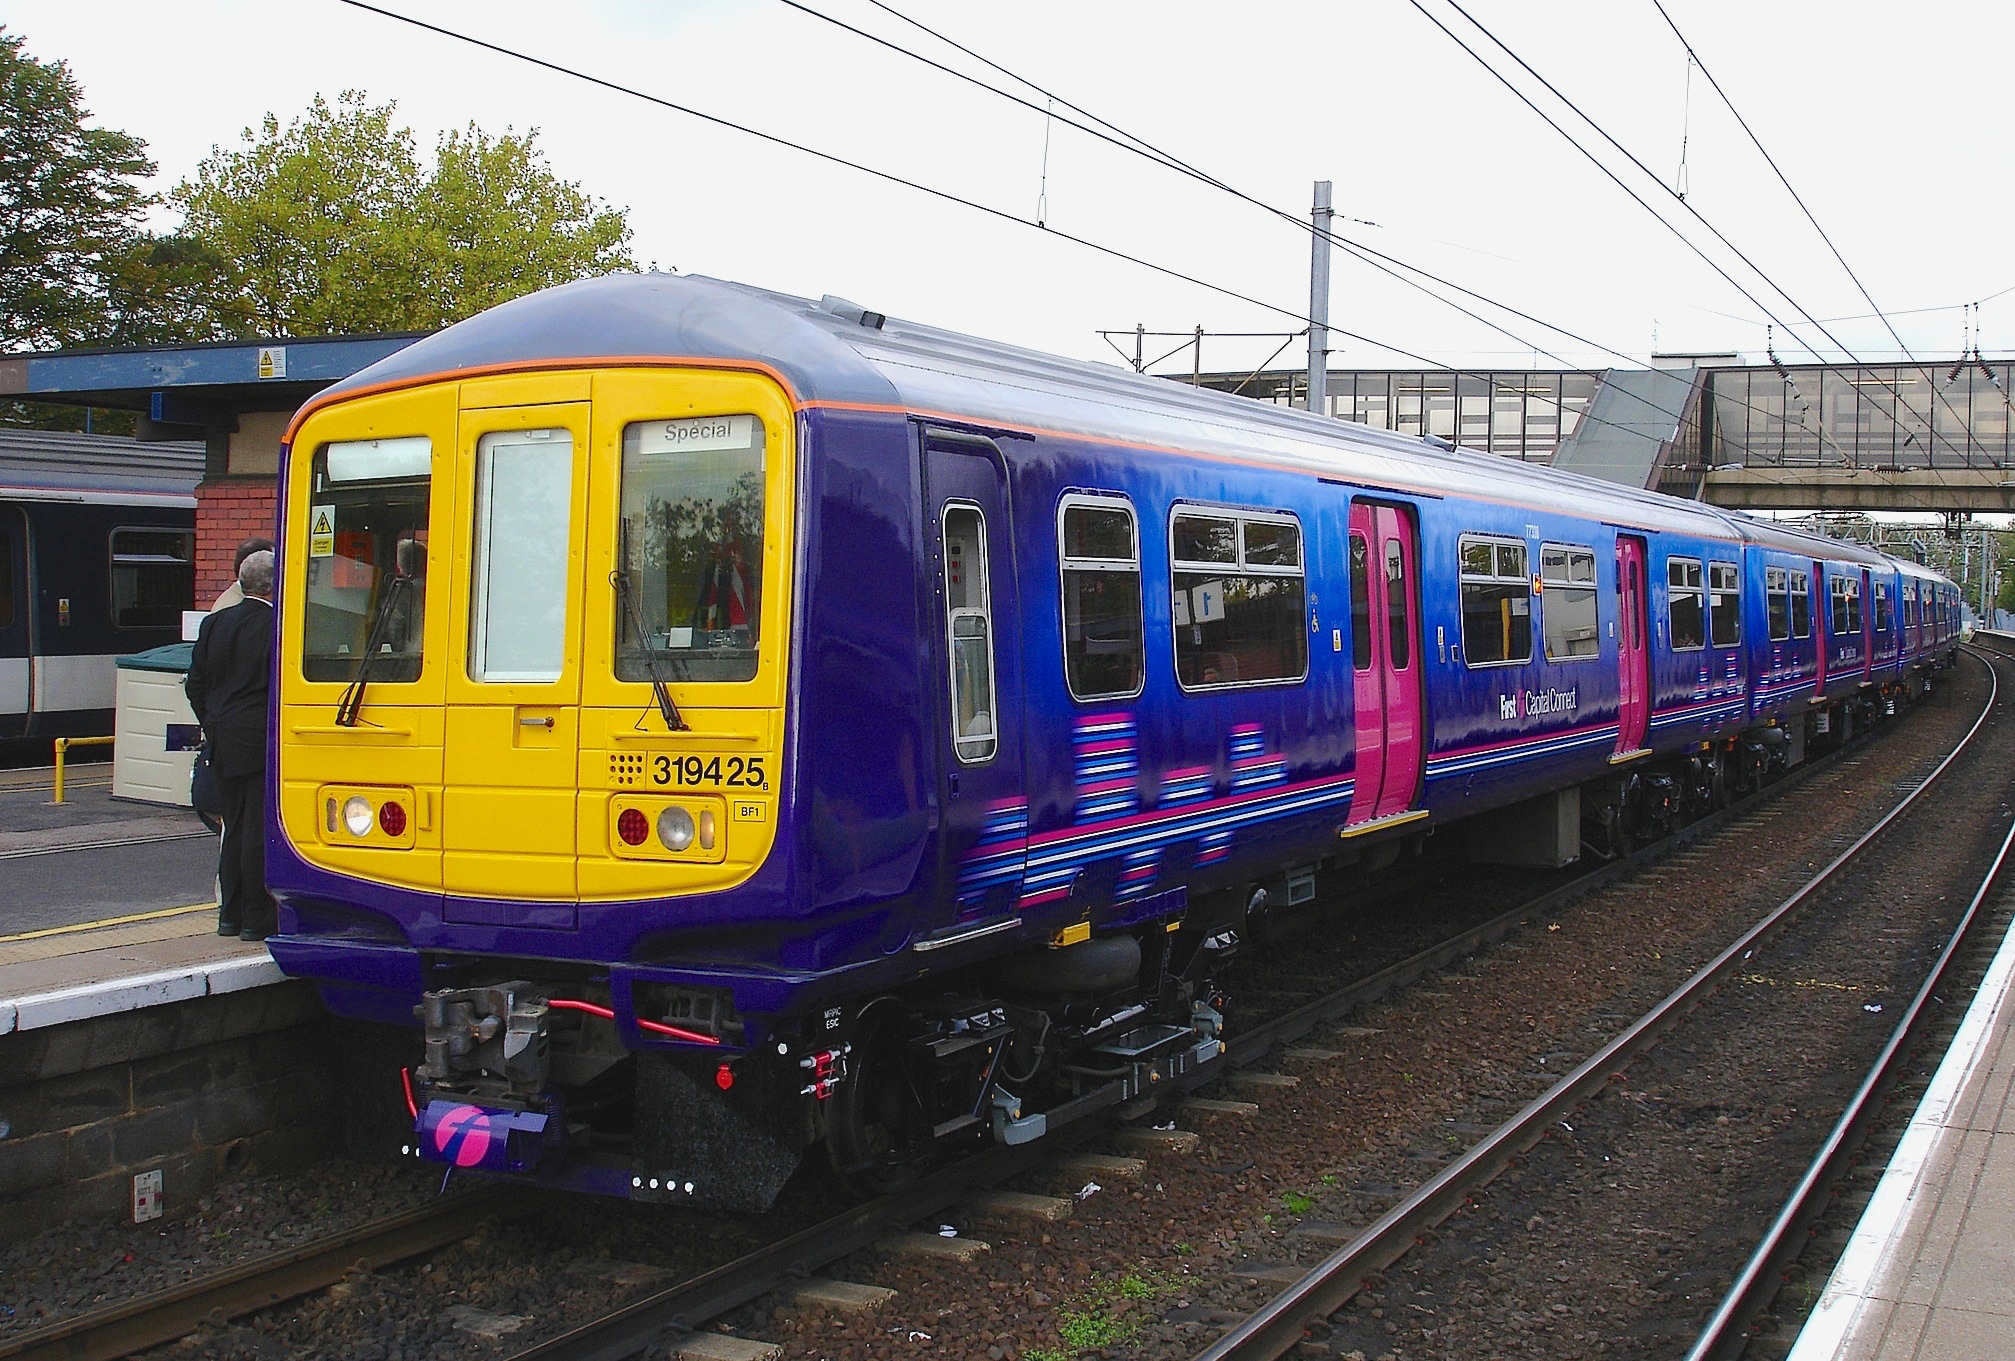 The first refurbished Class 319/4 for First Capital Connect was 319425,  seen here at Bedford